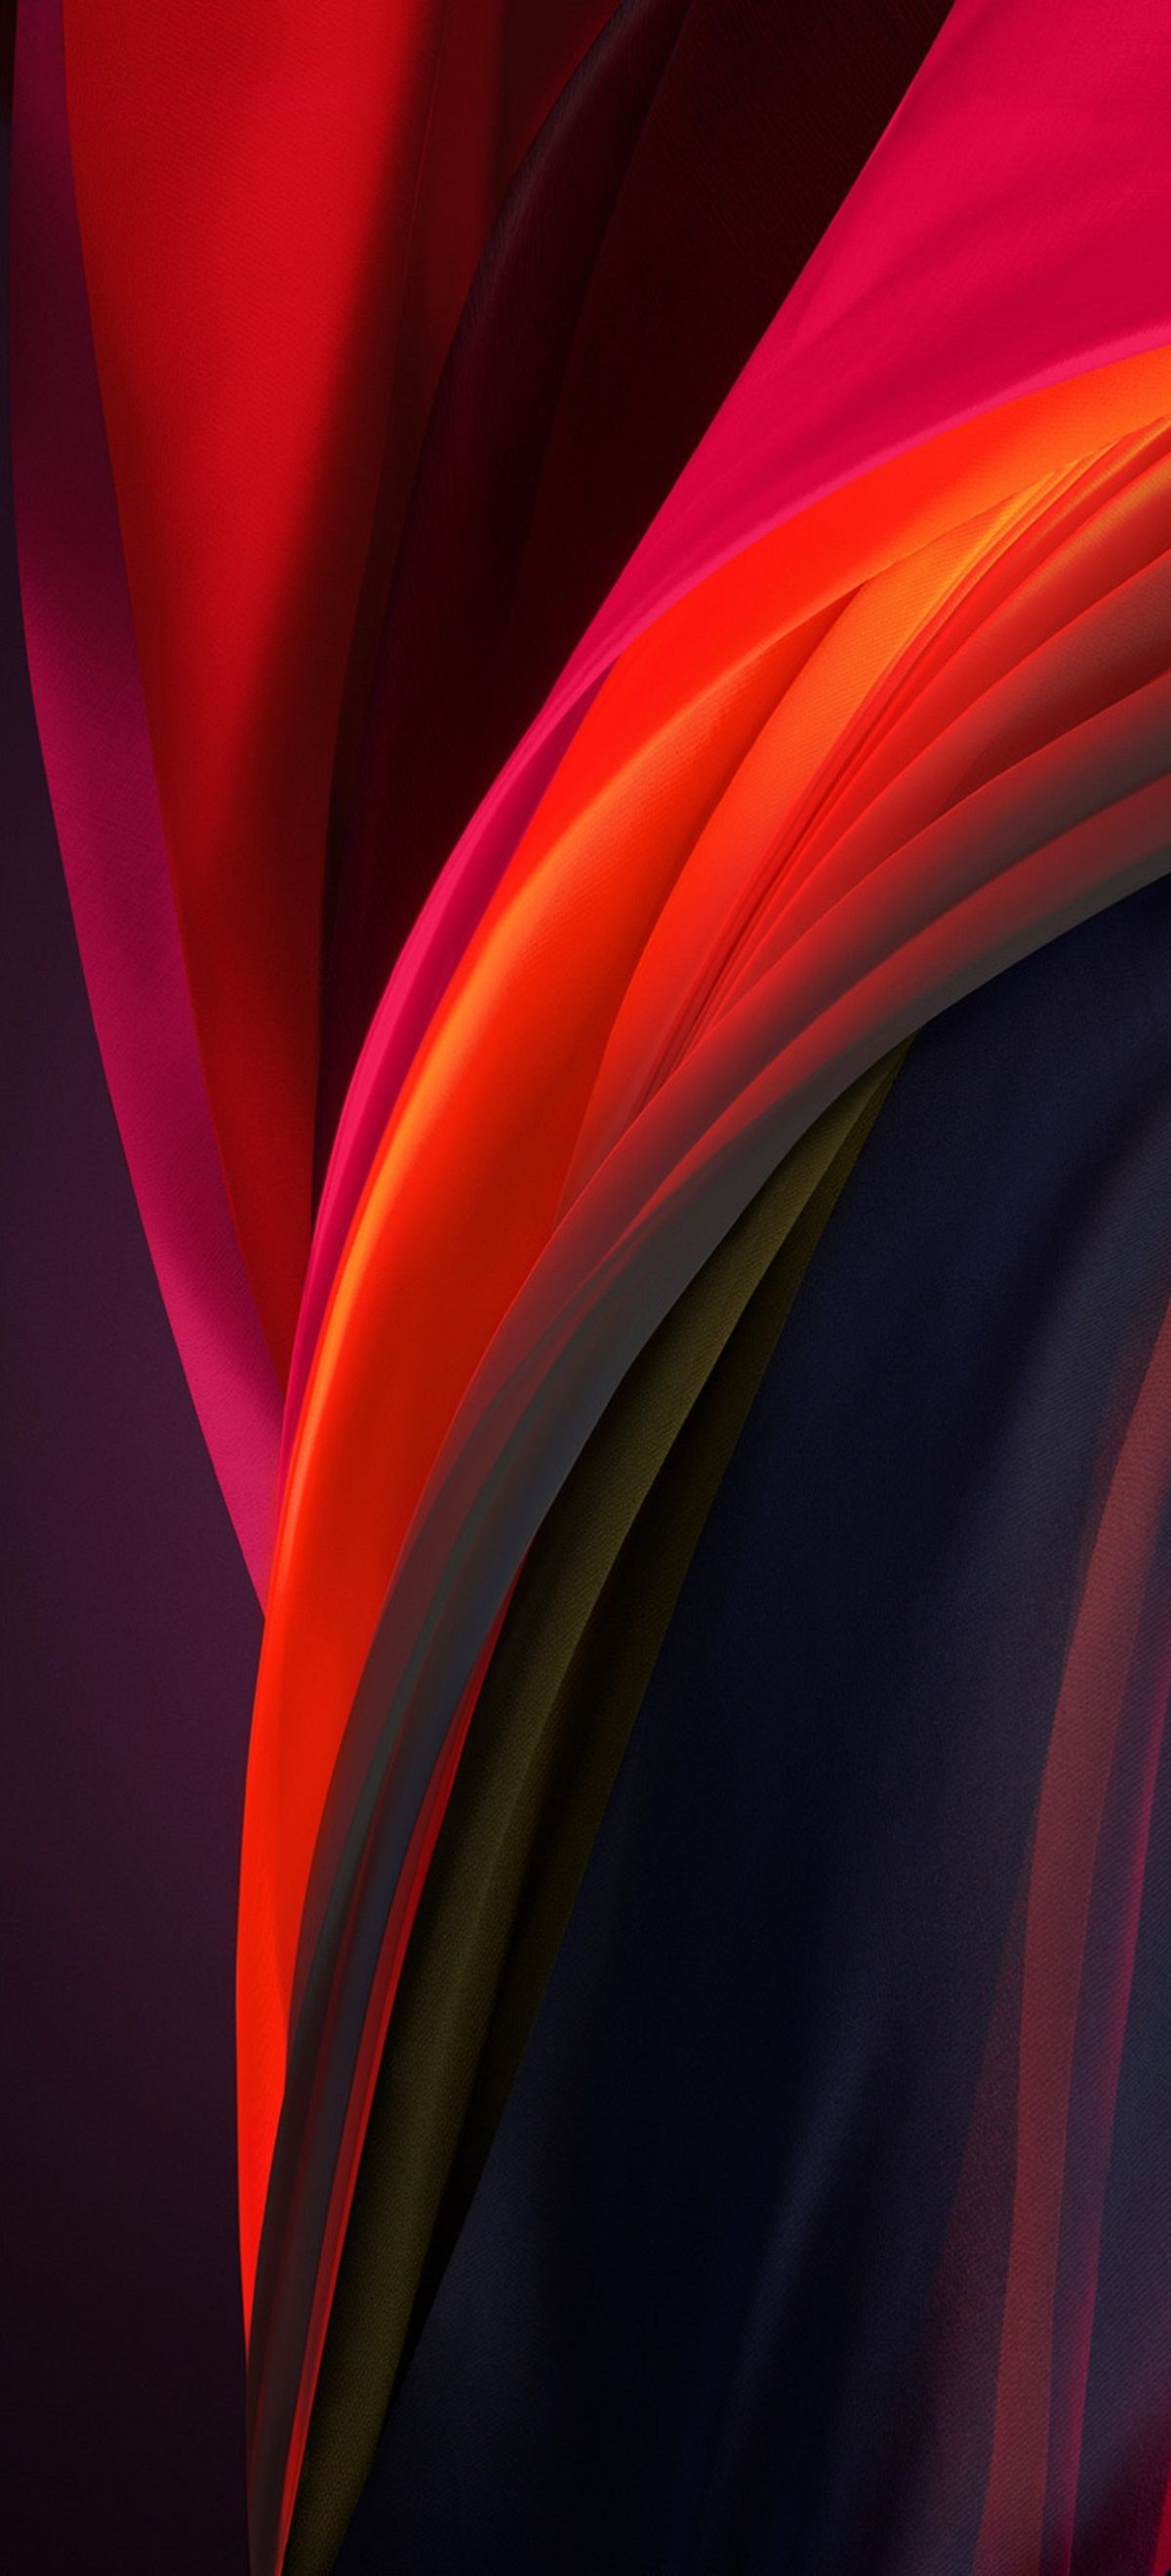 Pin By Lizzy On Pro Raze Phone Wallpapers Iphone Homescreen Wallpaper Pastel Iphone Wallpaper Iphone Wallpaper Gradient